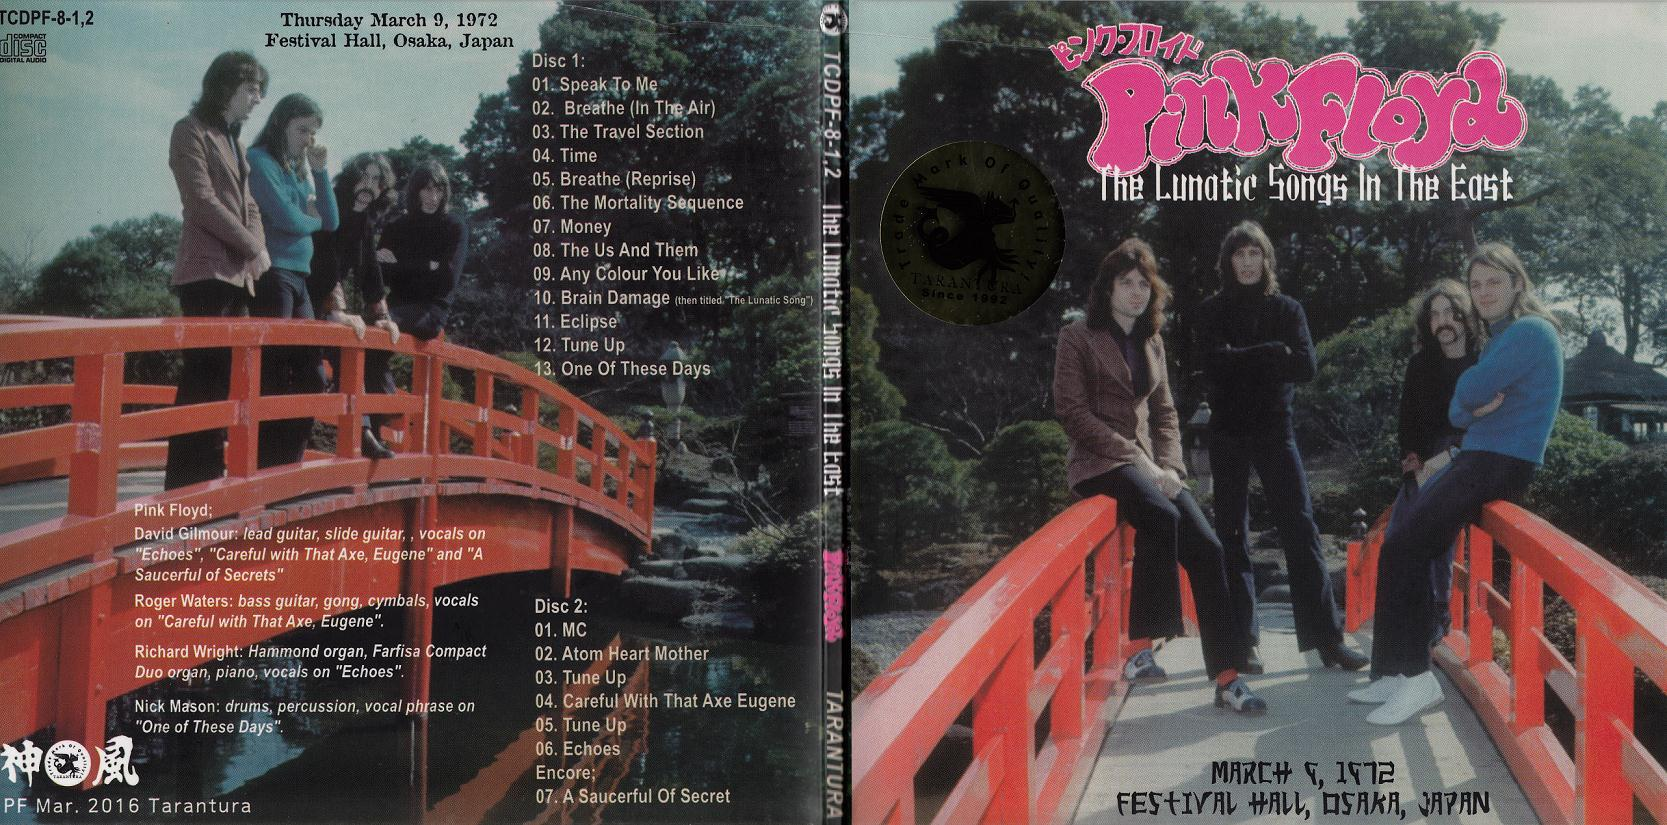 1972-03-09-the_lunatic_songs_in_the_east-digipack1